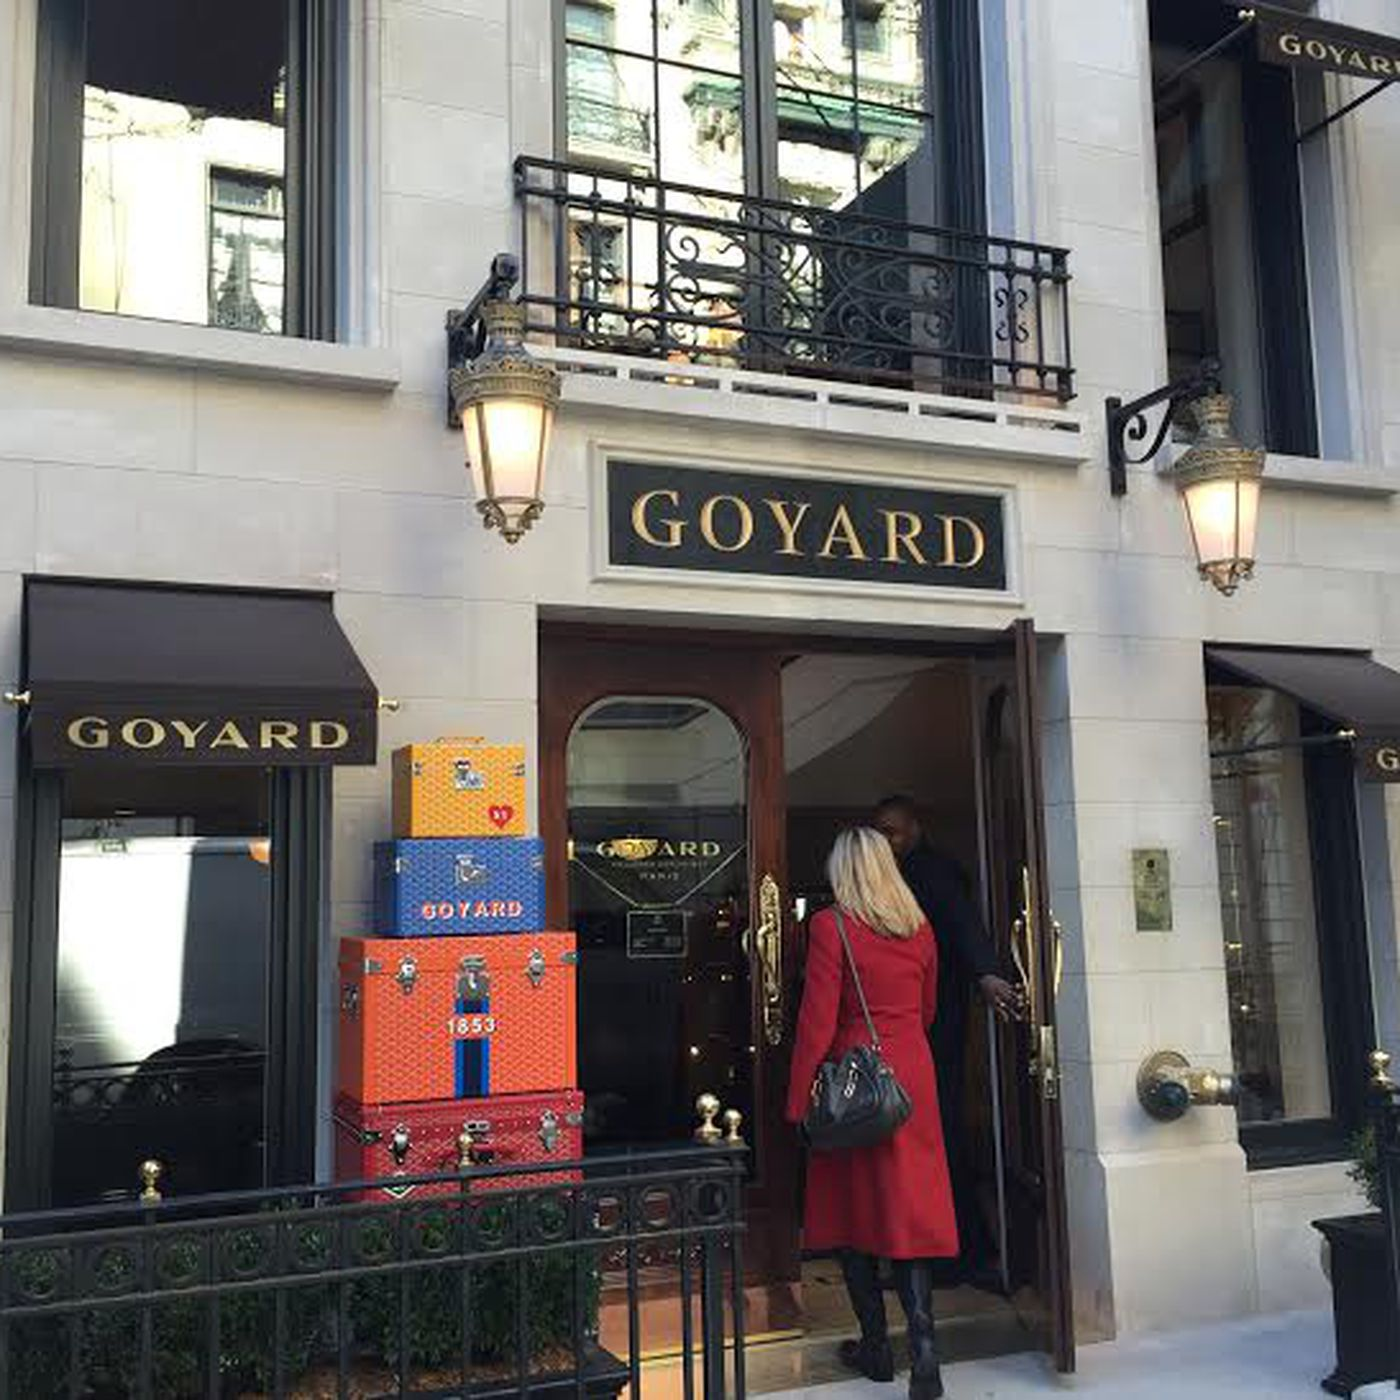 d2a69531c85 Goyard Quietly Debuted Its First NYC Store This Month - Racked NY